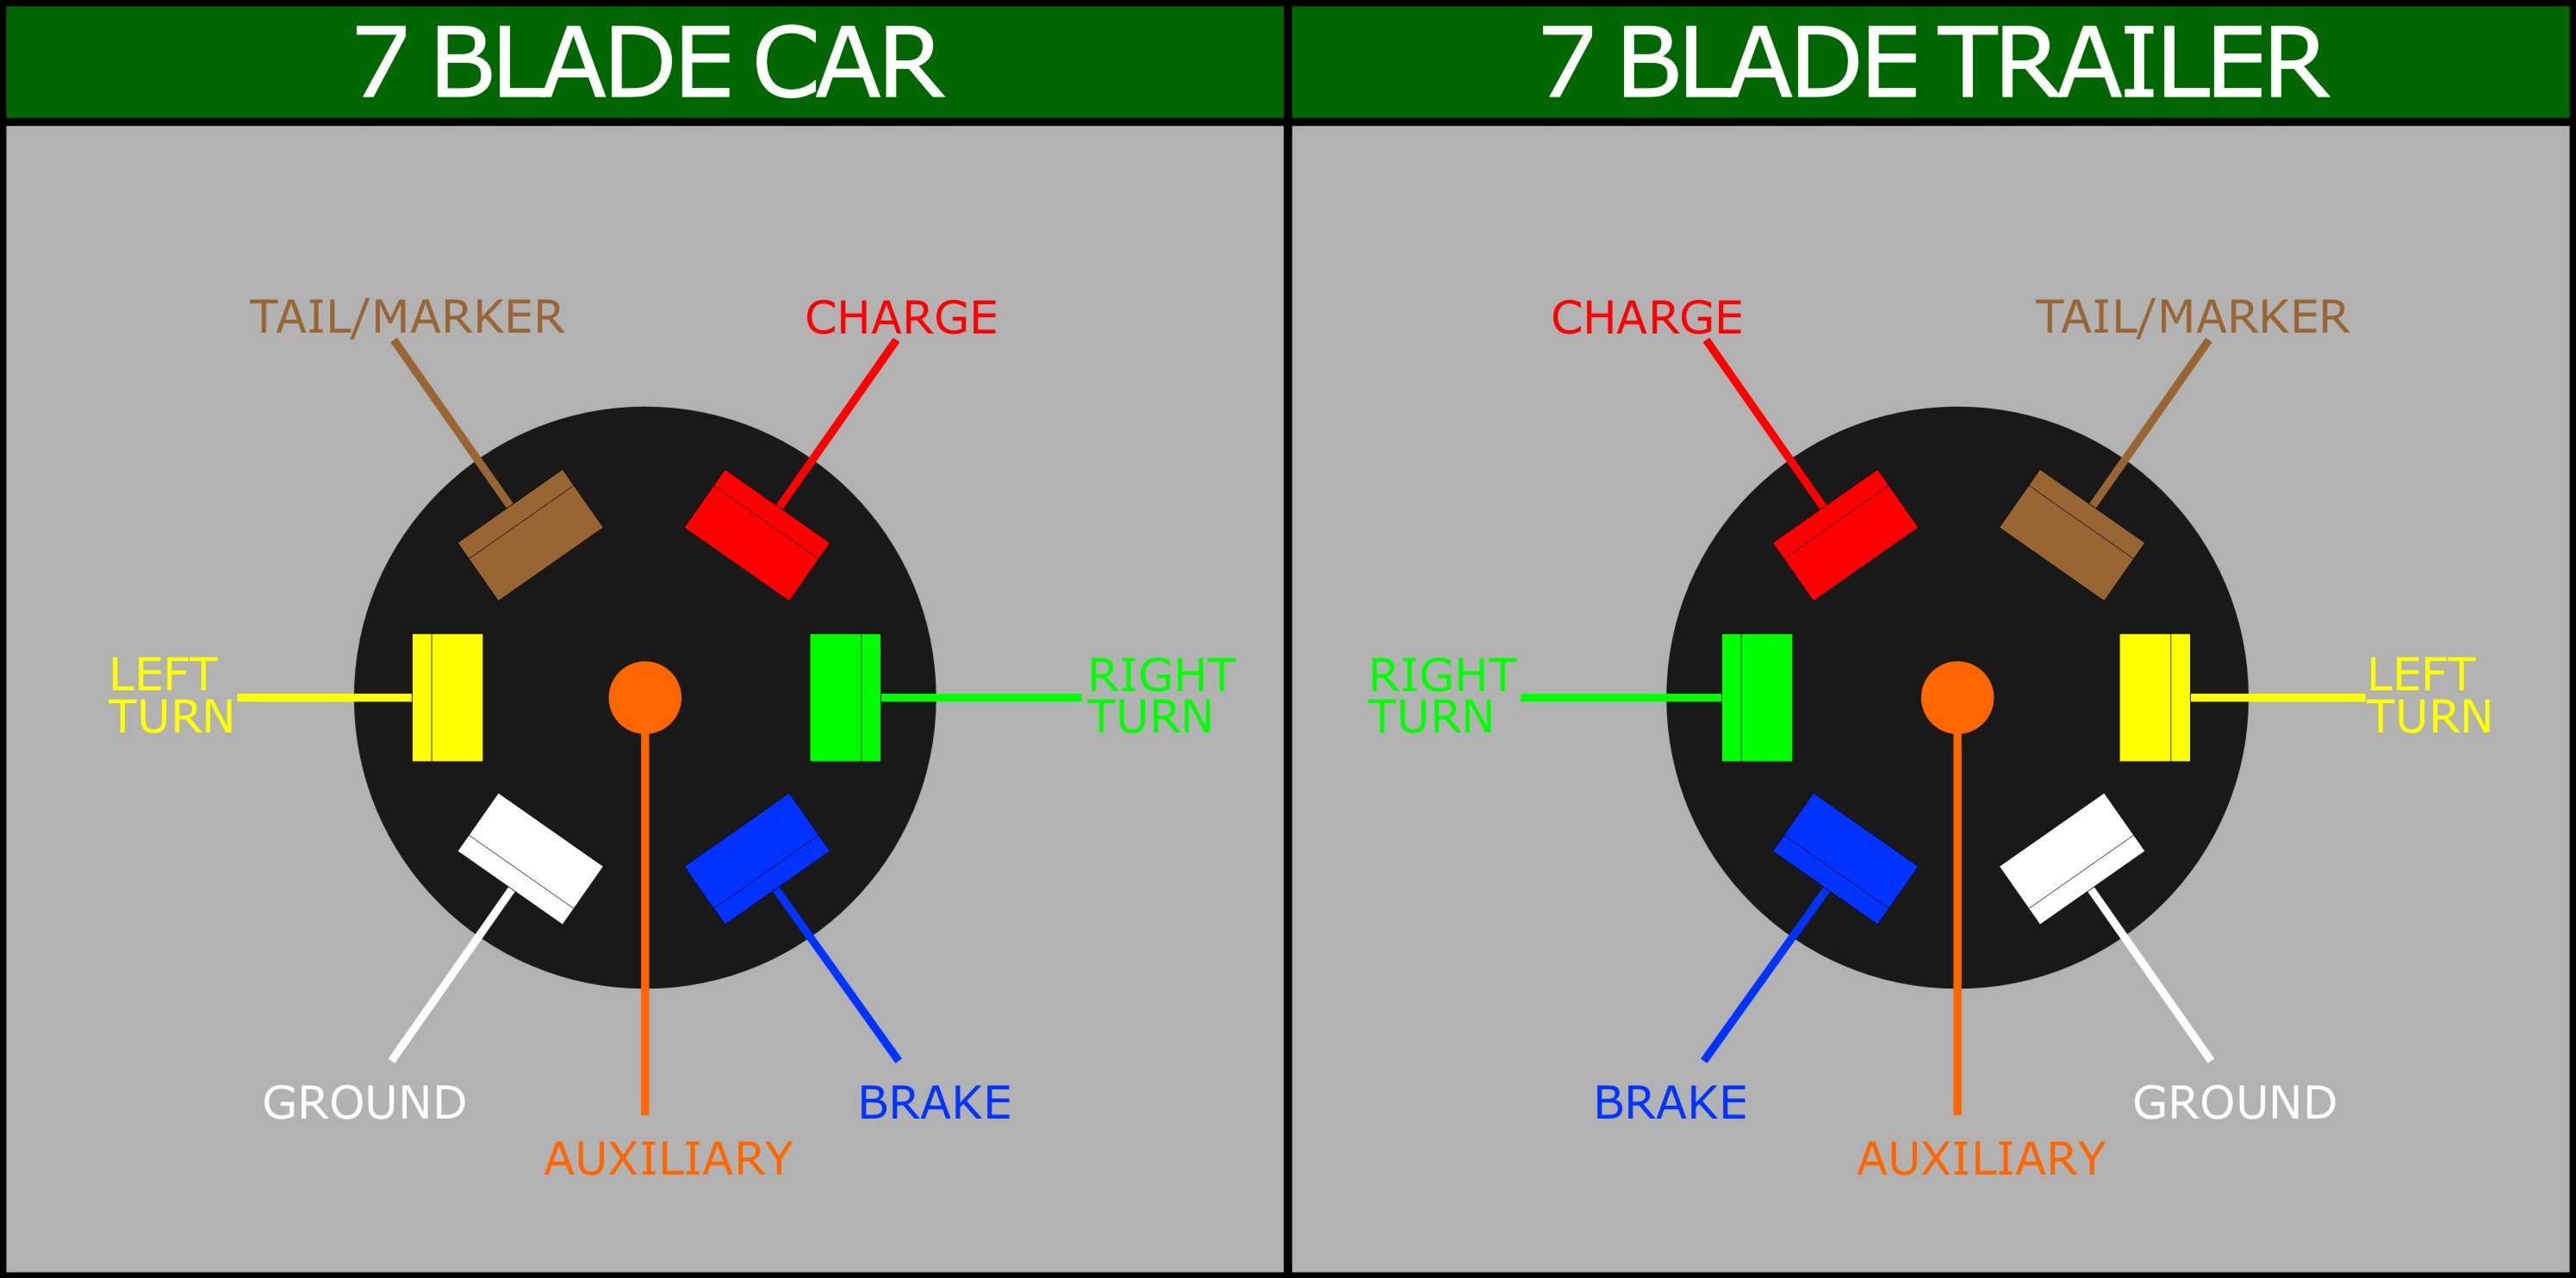 Wiring for 7 Blade Plug wiring a 7 blade trailer harness or plug car trailer socket wiring diagram at bakdesigns.co